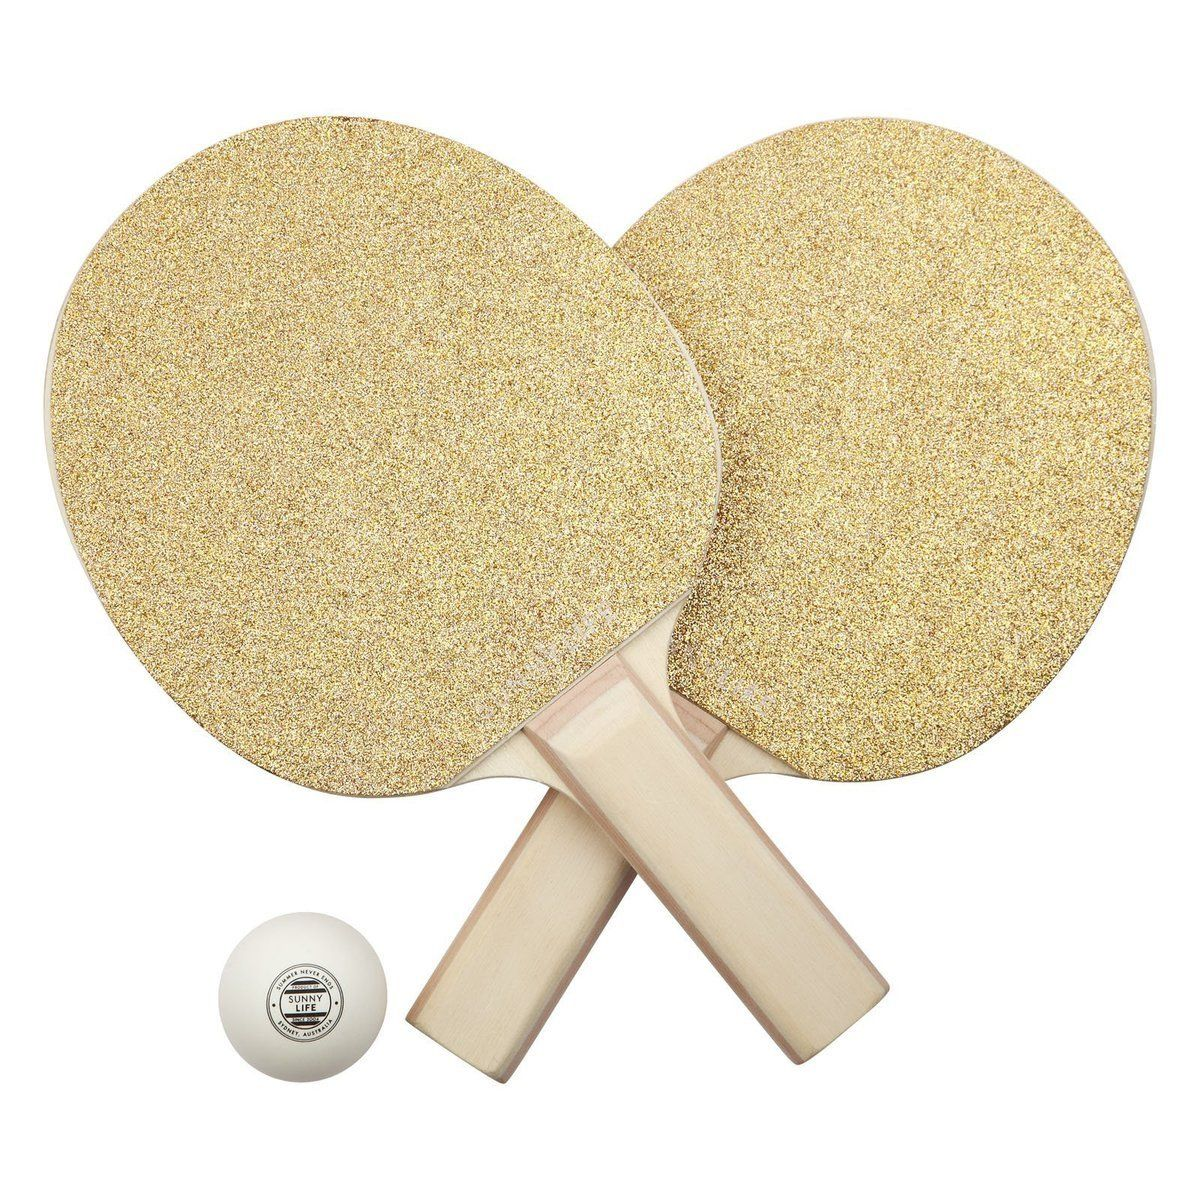 Sunnylife Table Top Tennis Game Ping Pong Set For Kids And Adults Gold Glitter Tennis Games Sunnylife Ping Pong